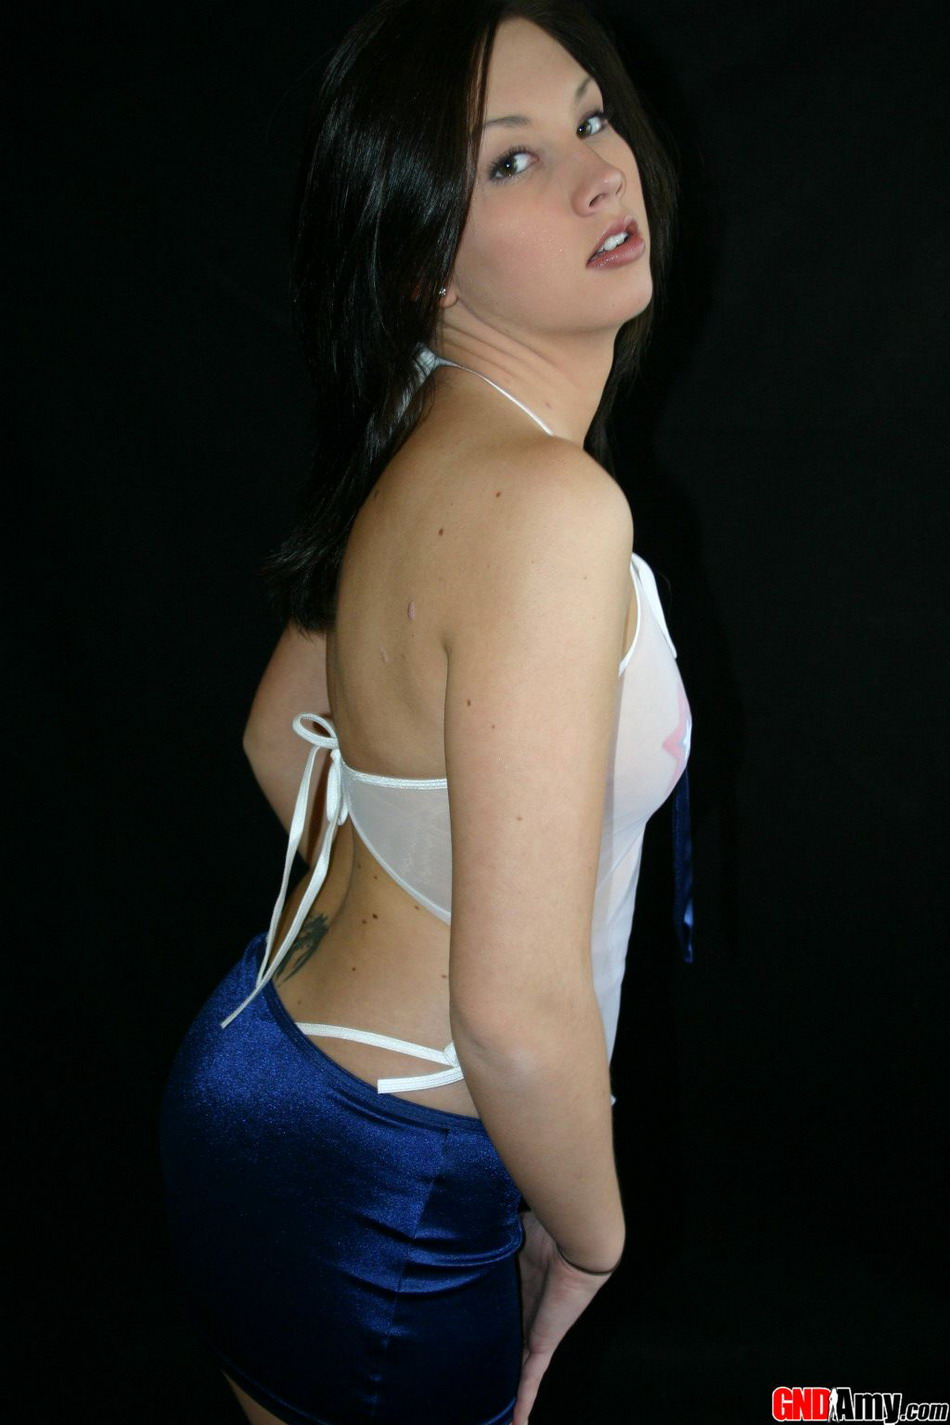 Teen Wearing A Sheer Top With Stars Under It Covering Her Nipples - Picture 3